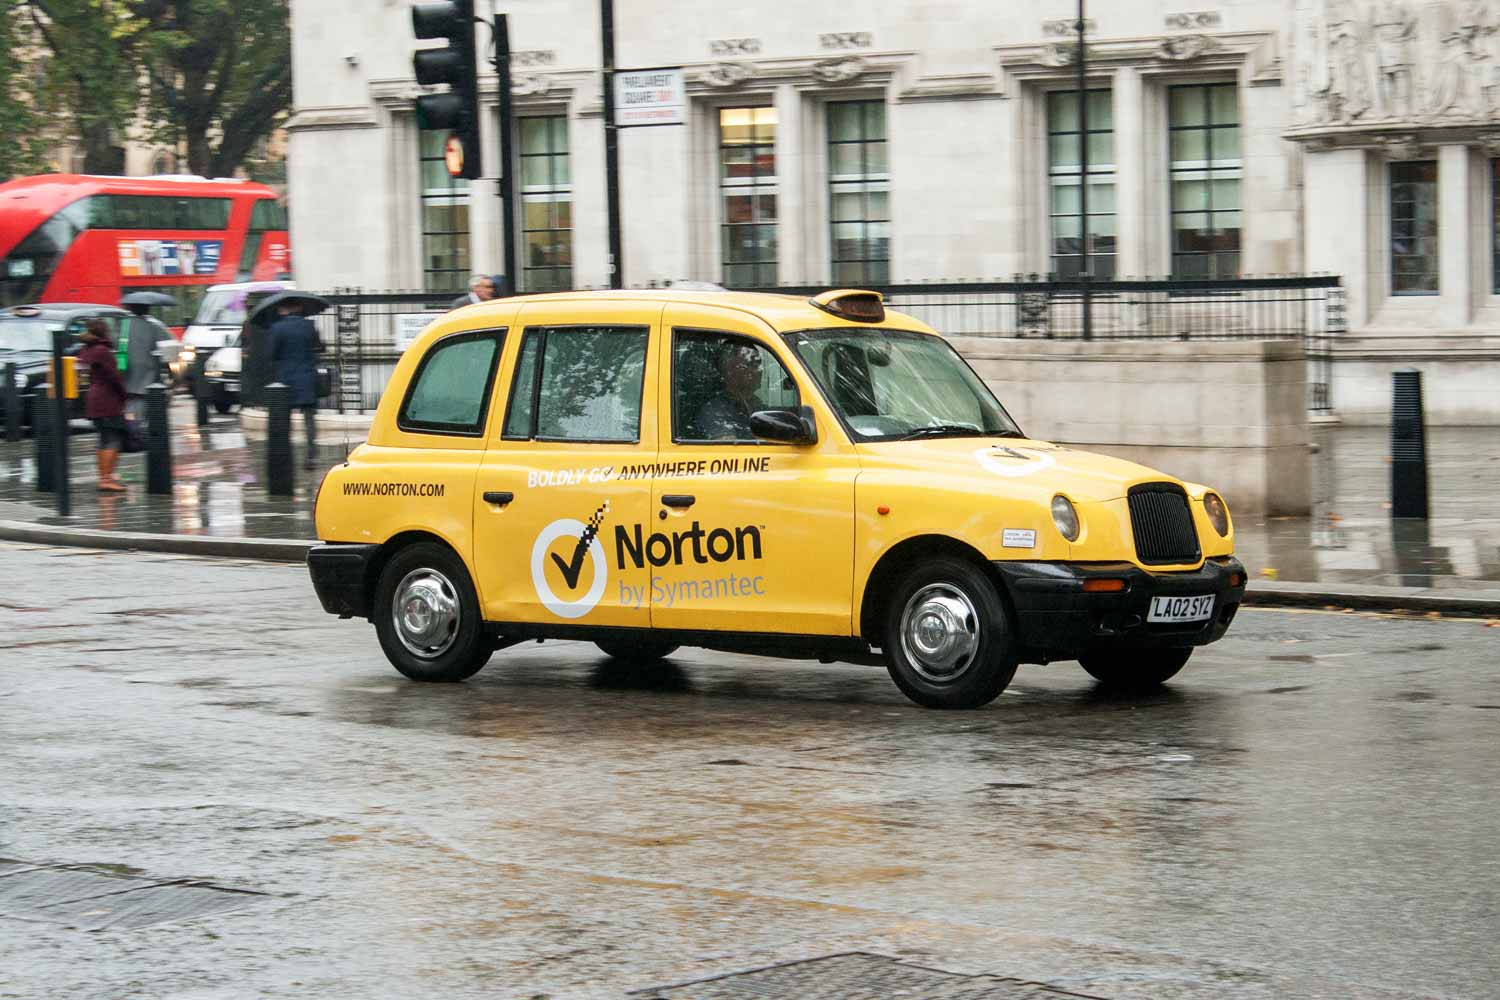 a full wrap taxi advertising norton anti virus software in london